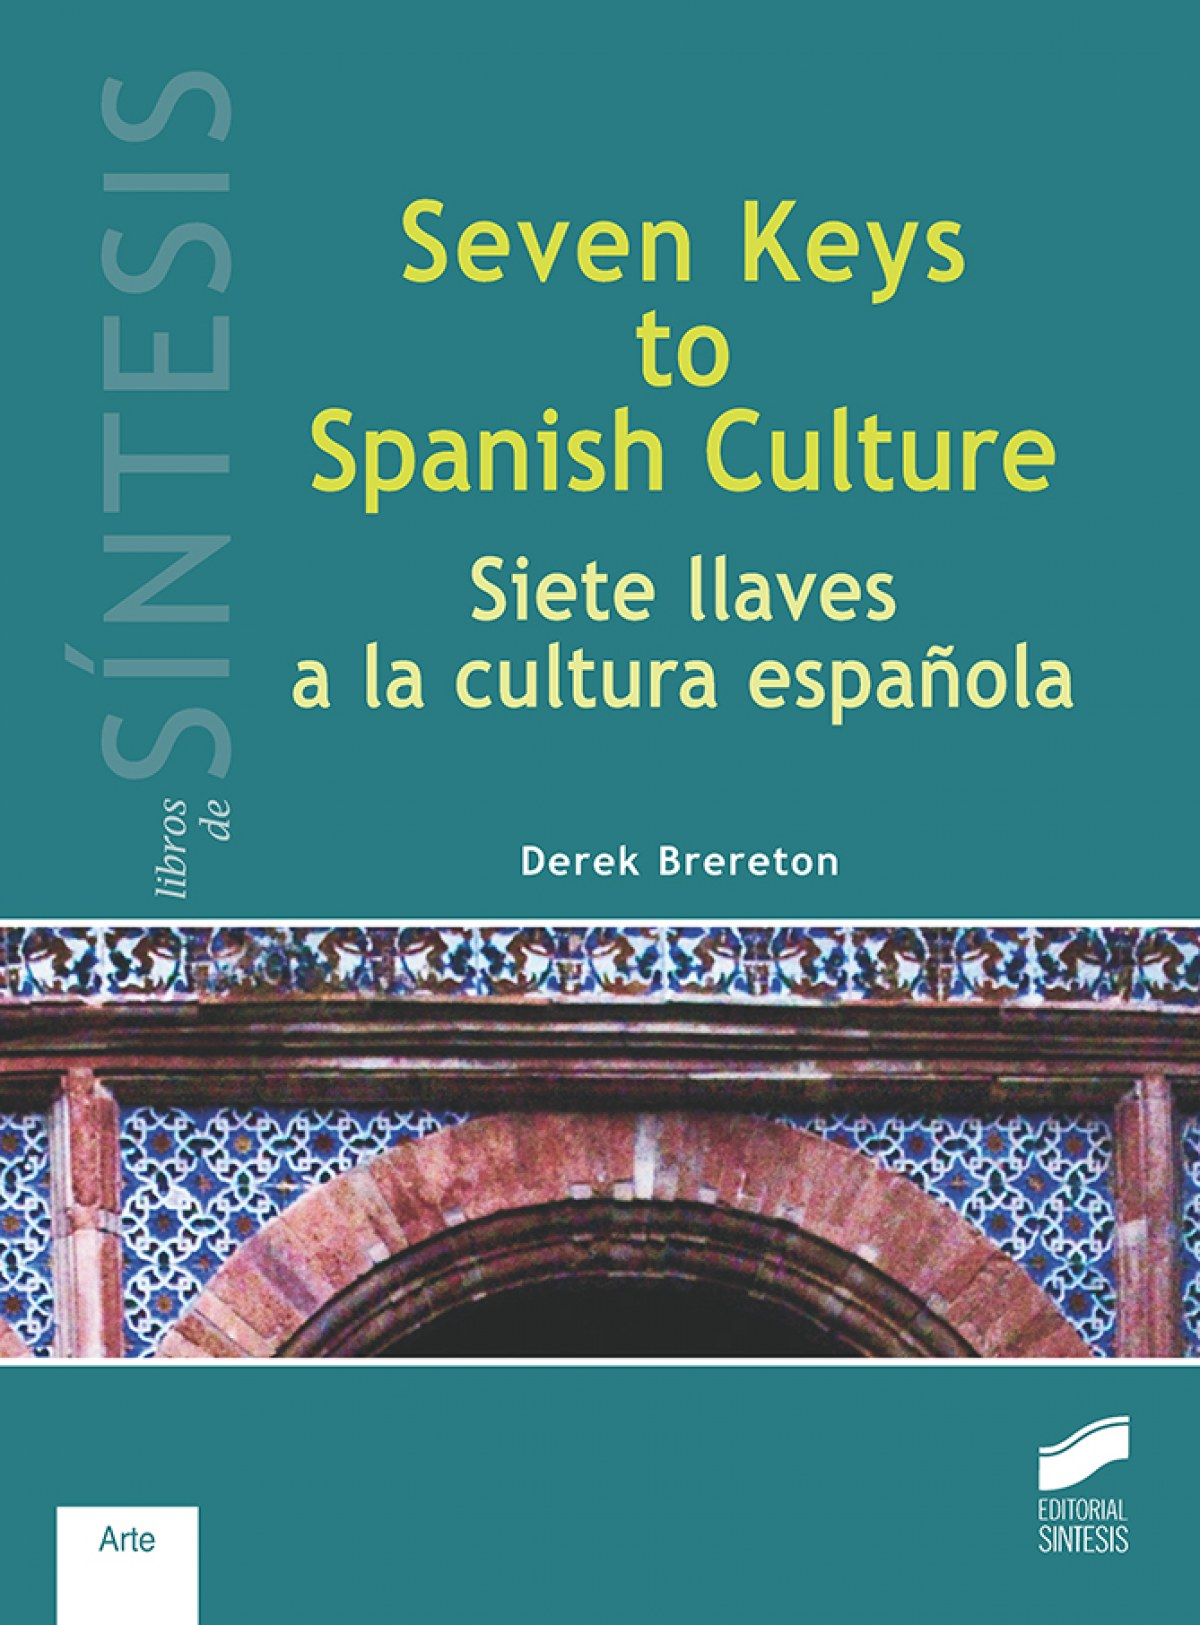 4.SEVEN KEYS TO SPANISH CULTURE:SIETE LLAVES A LA CULTURA